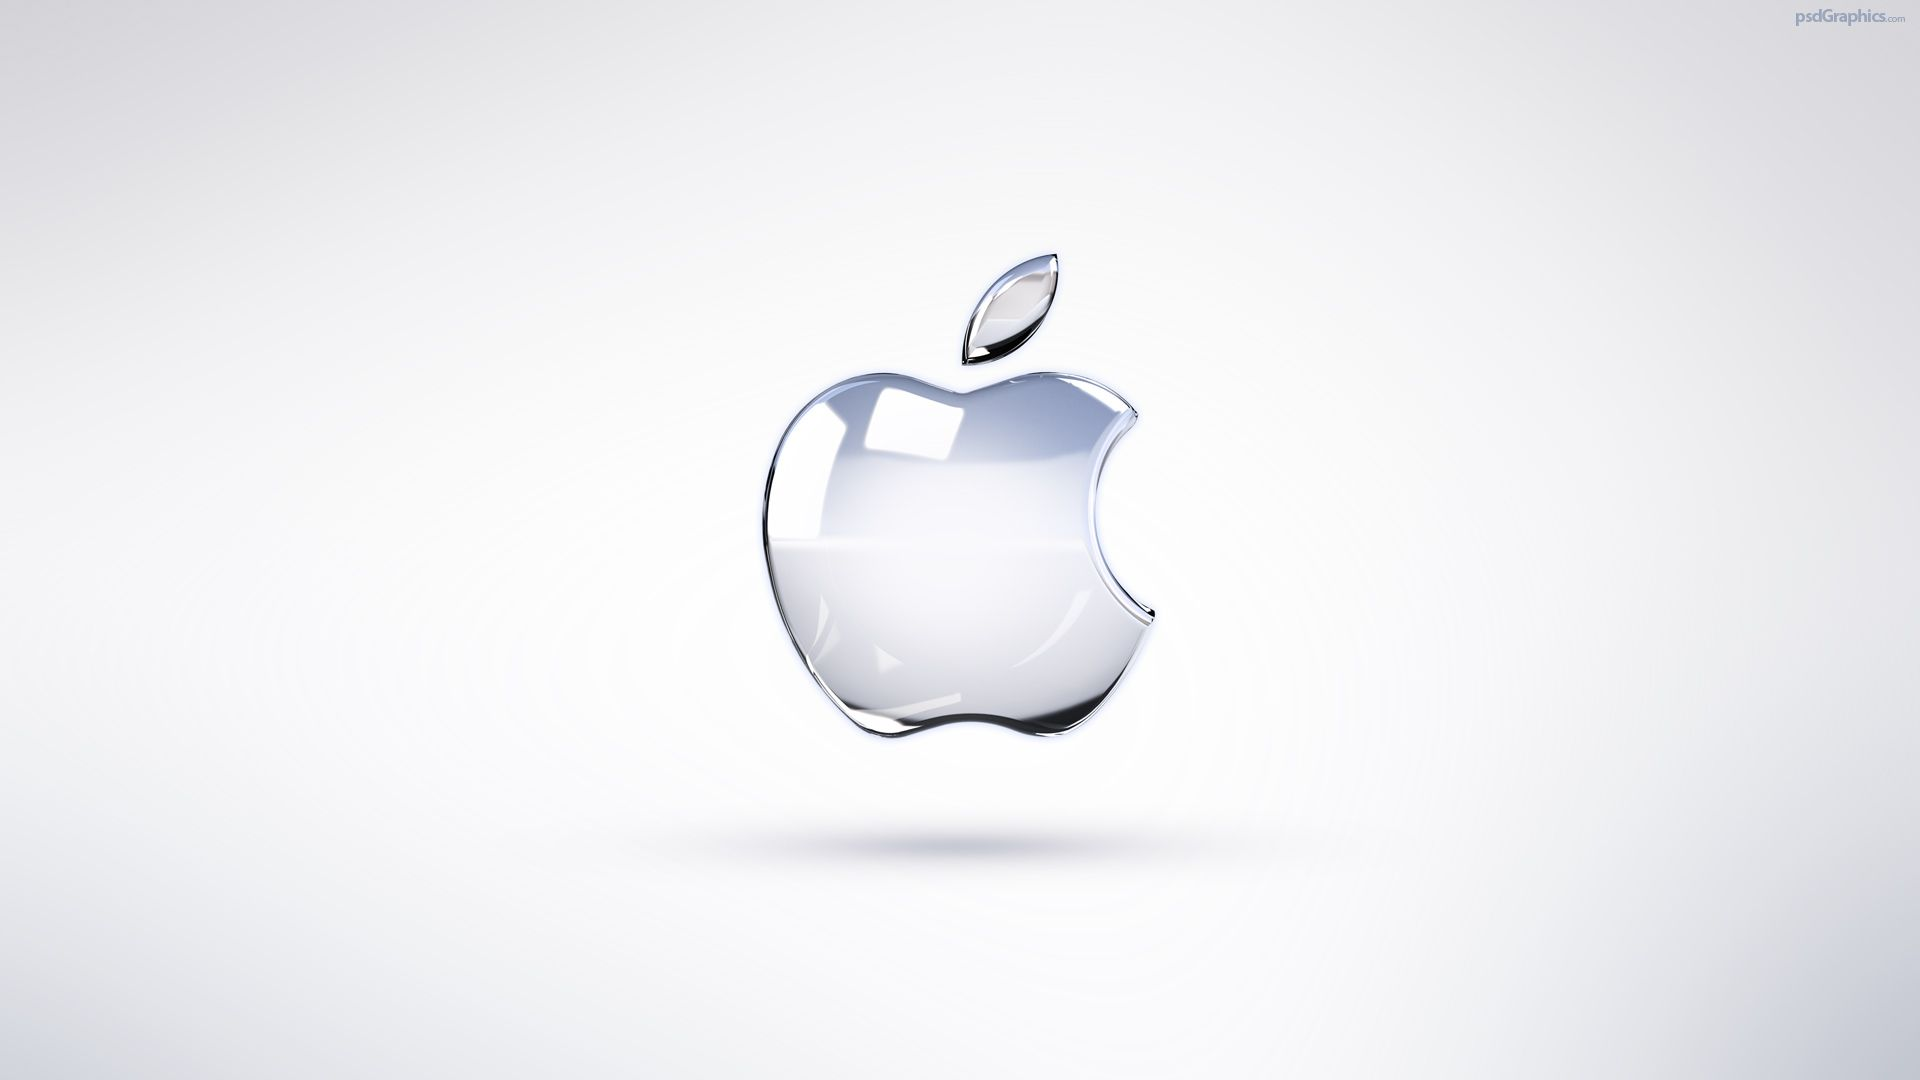 Apple Logo Hd Wallpaper Desktop Wallpapers Free Download